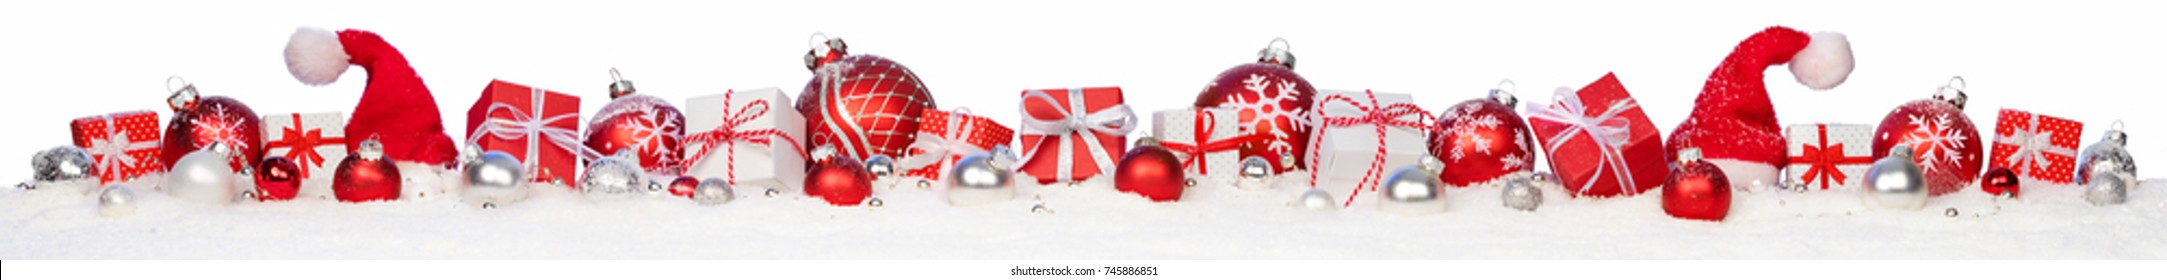 Christmas Gifts And Baubles On Snow